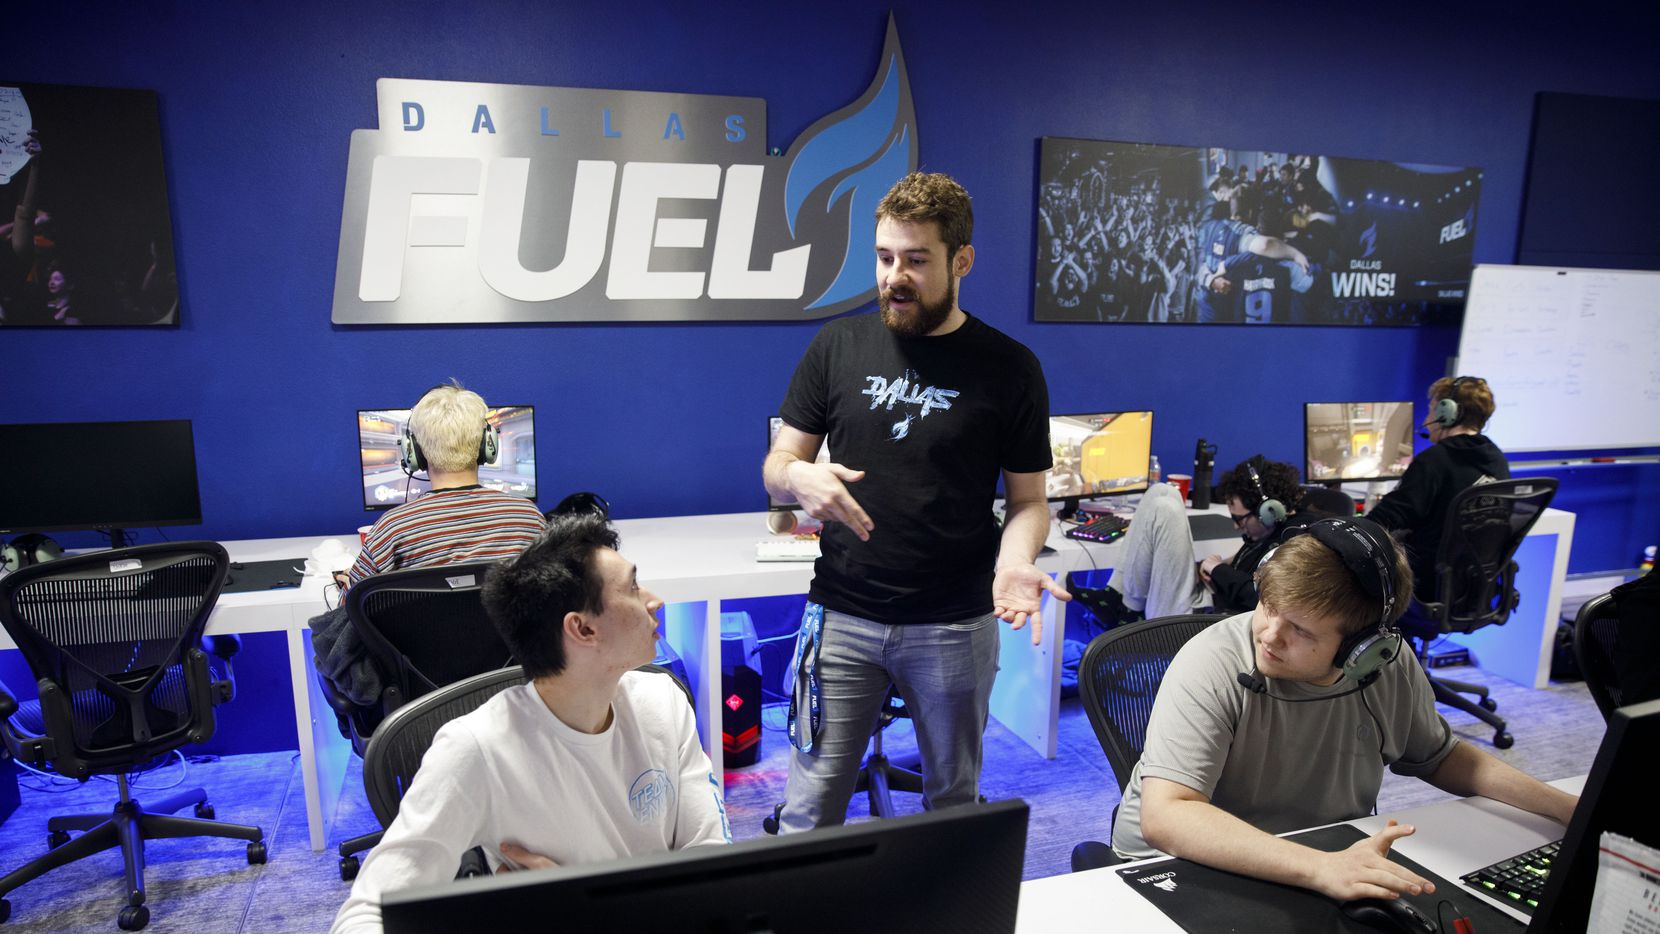 "Ashley ""Trill"" Powell, left, speaks to Dallas Fuel general manager Mat Taylor, center, while Timo ""Taimou"" Kettunen looks on."